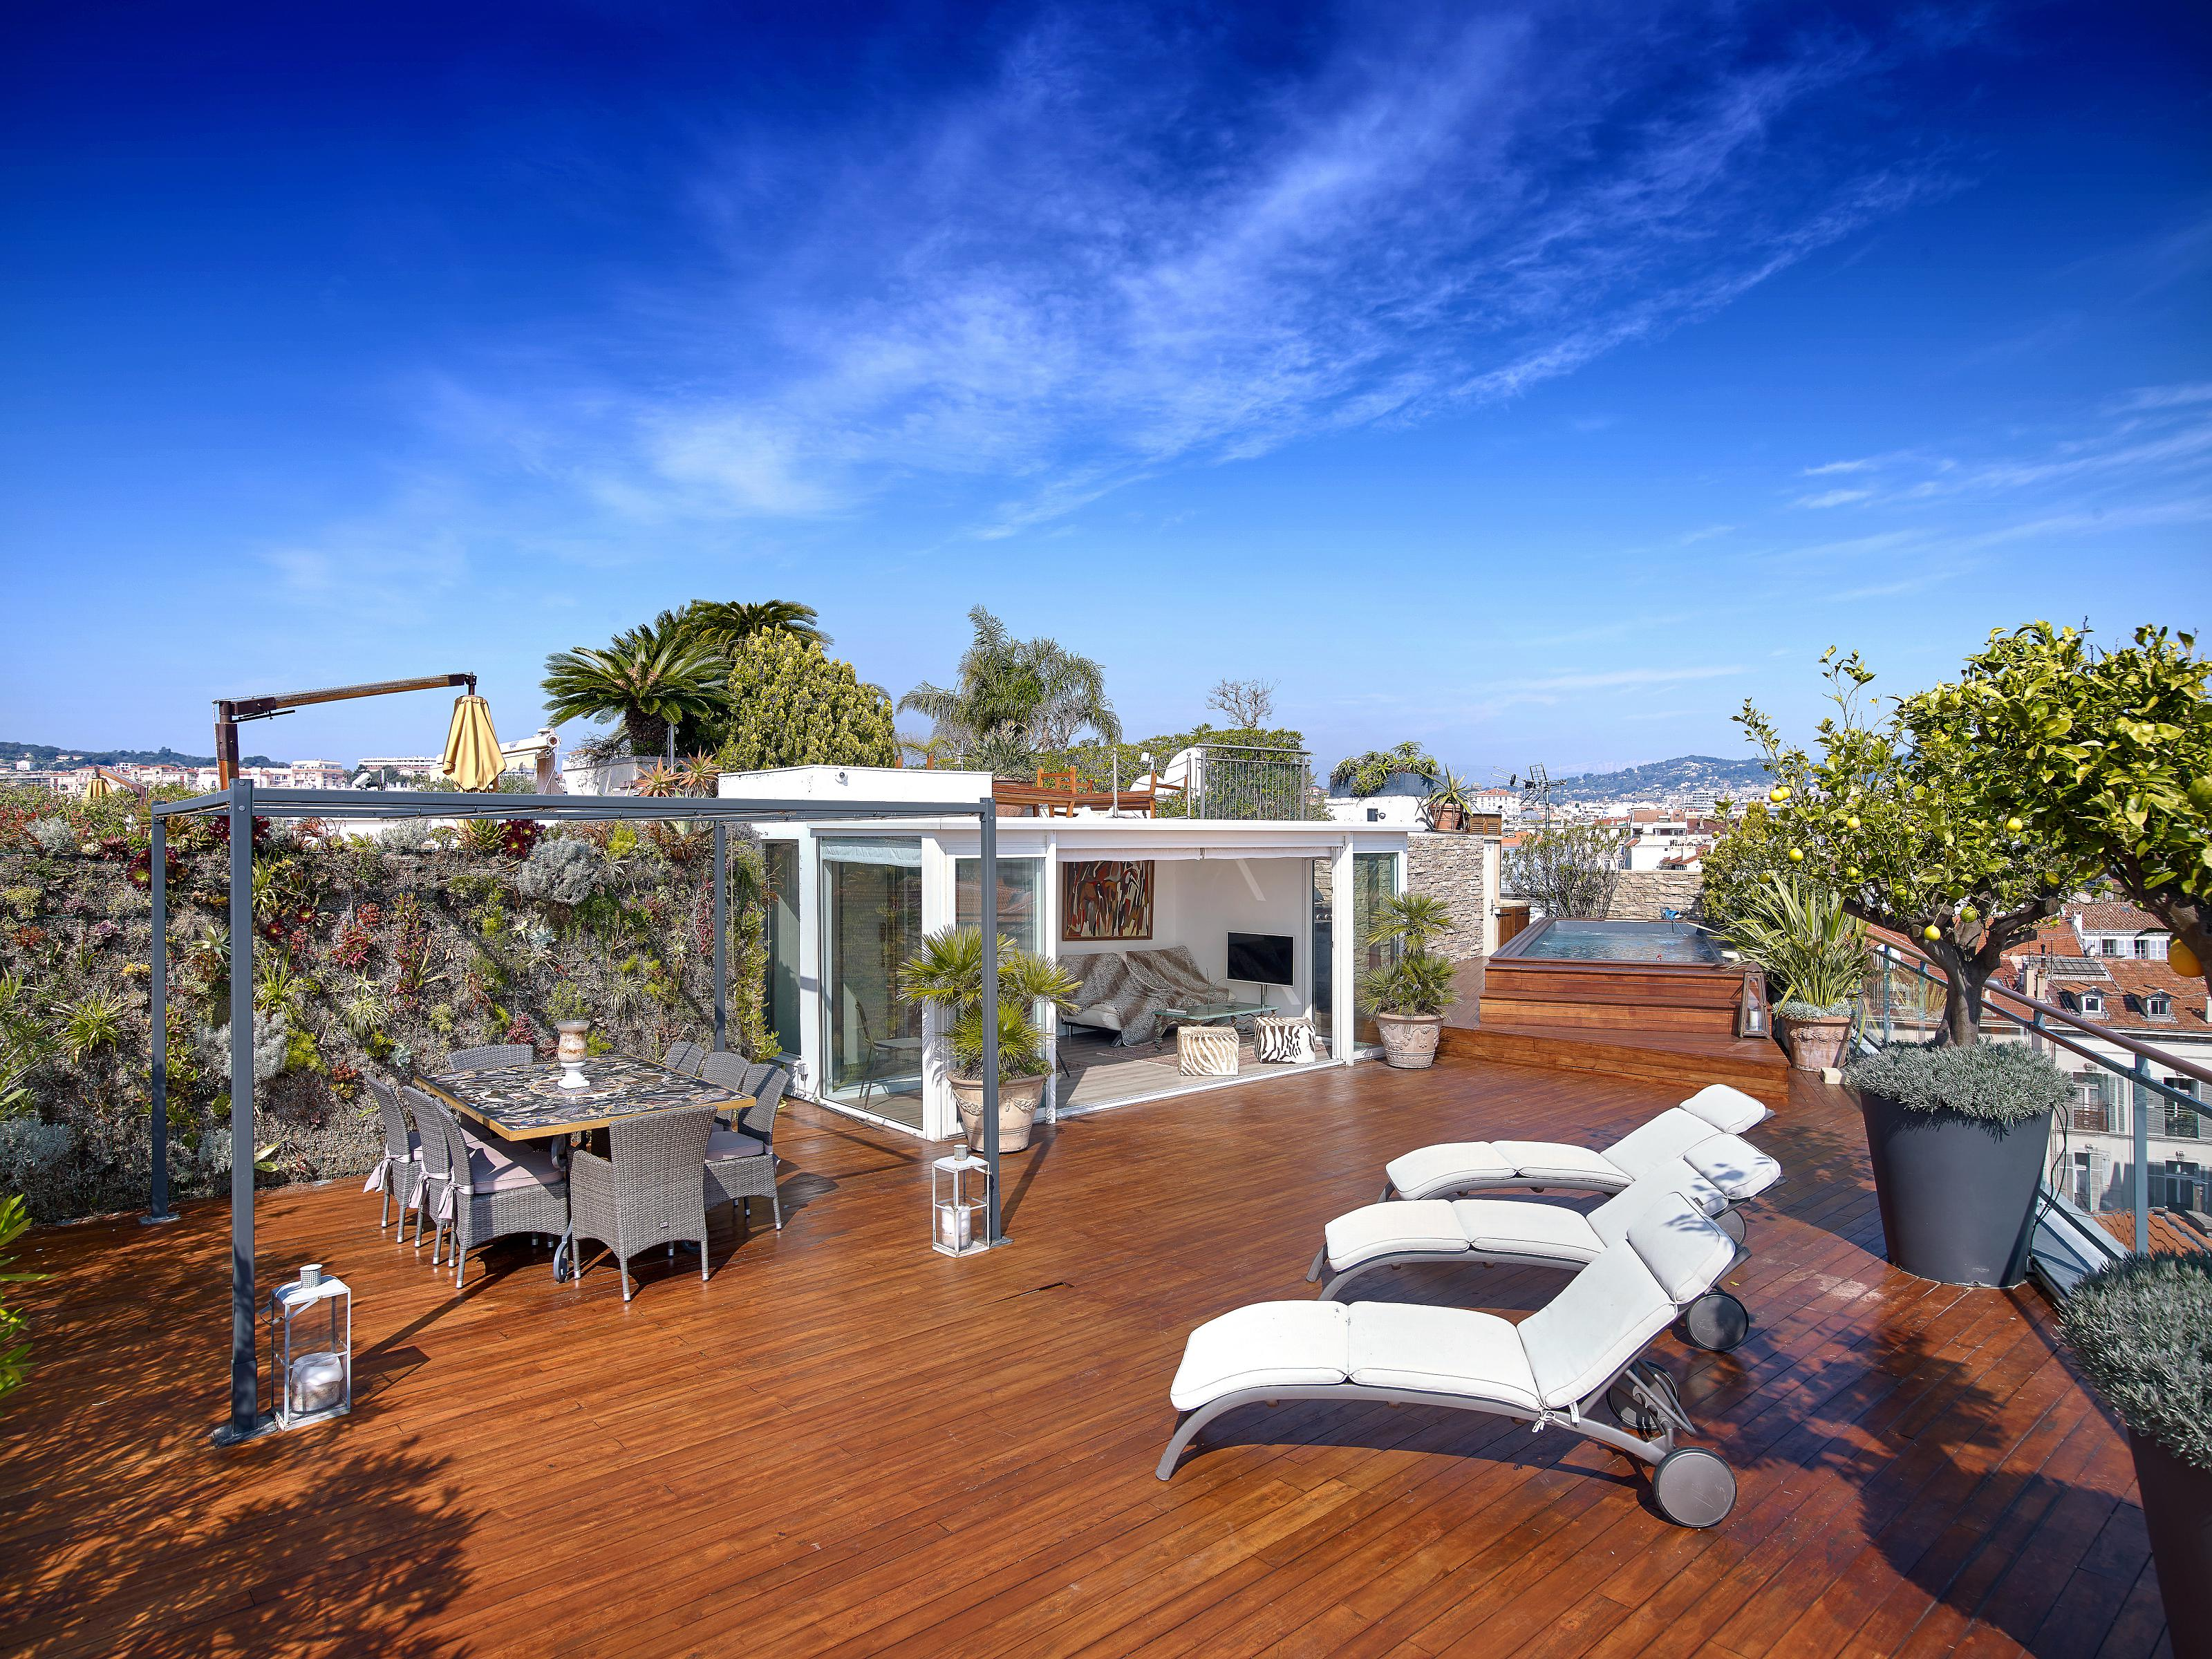 Single Family Home for Sale at Luxury penthouse for sale in front of the Palais des Festivals Cannes Cannes, Provence-Alpes-Cote D'Azur 06400 France